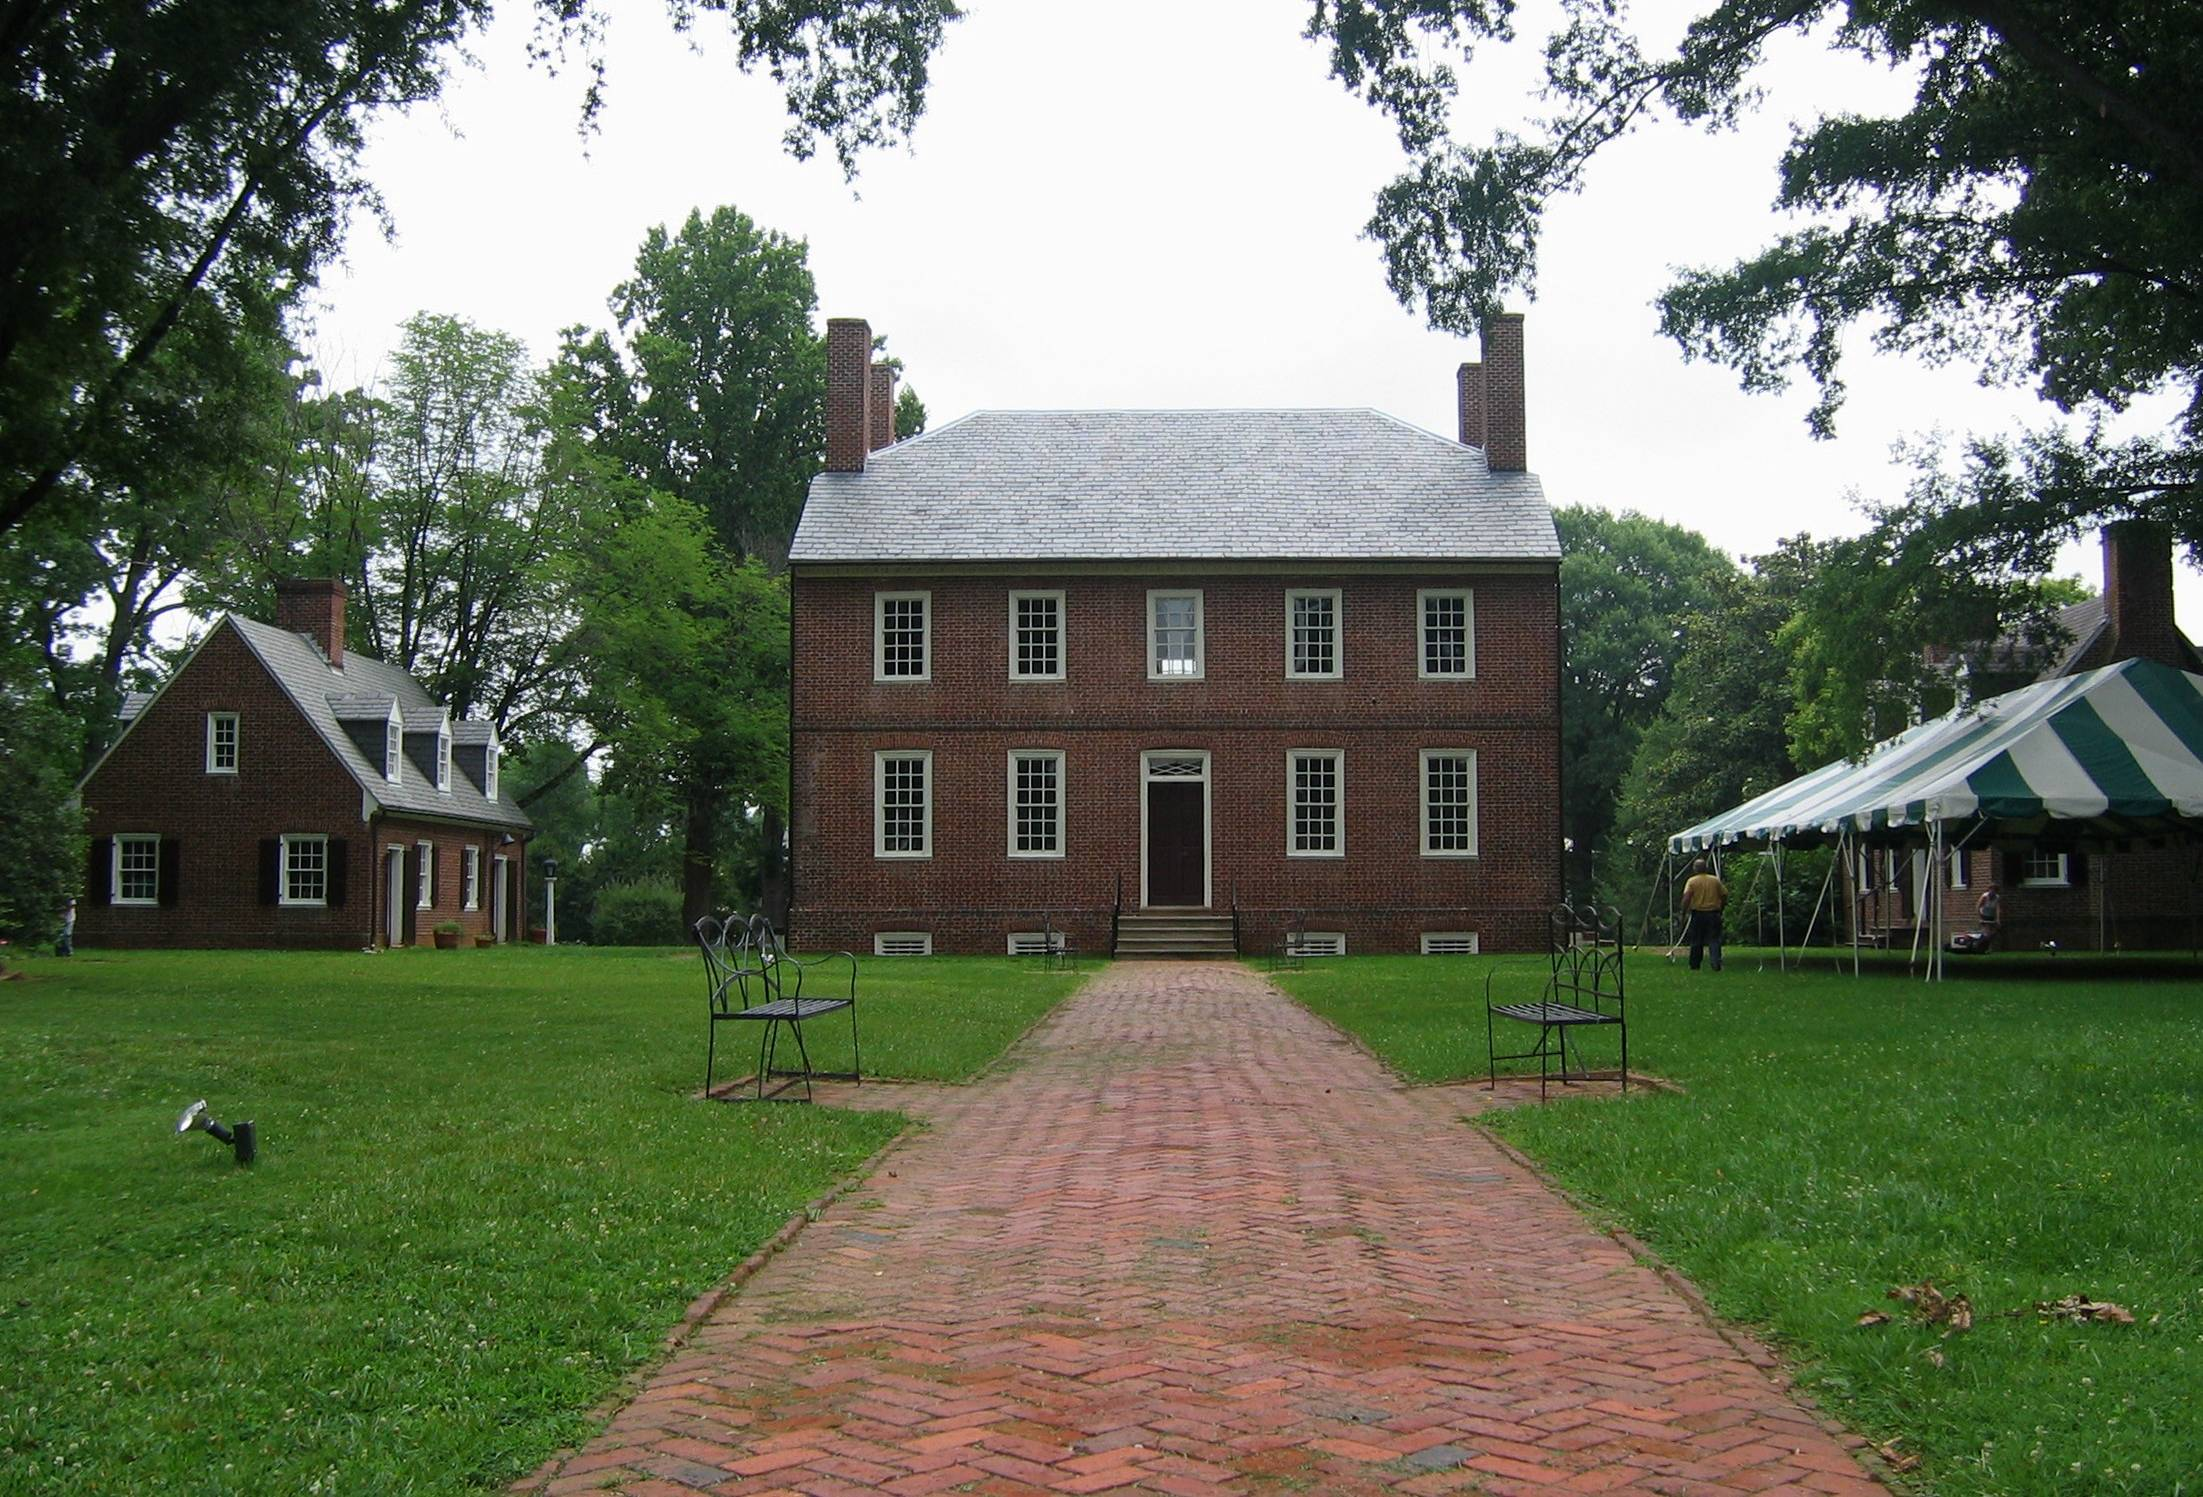 Kenmore Plantation in Fredericksburg, Virginia